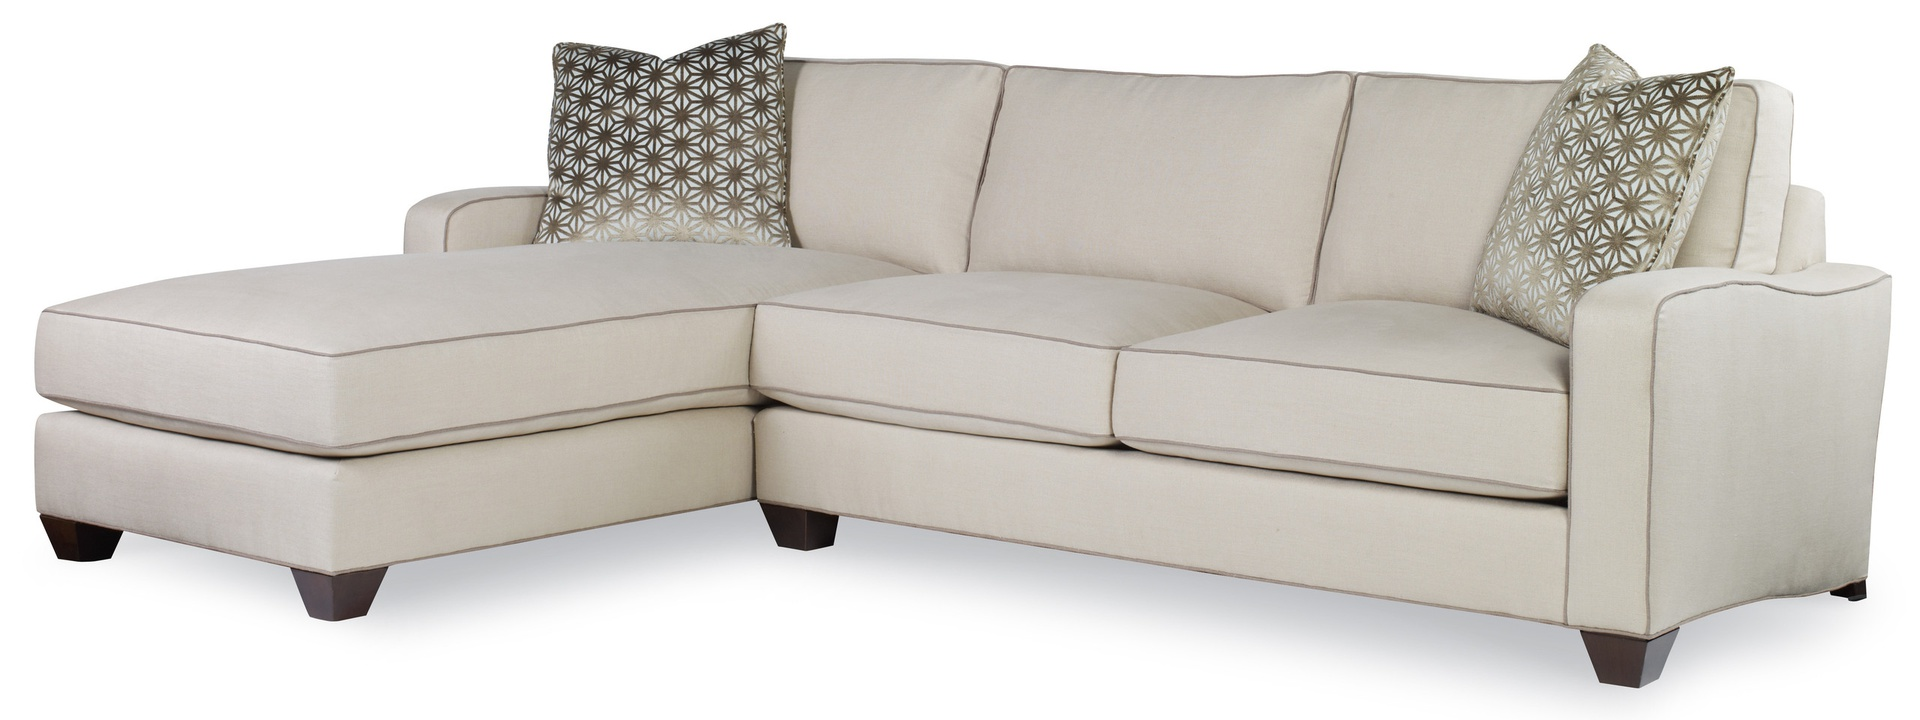 5107-sectional